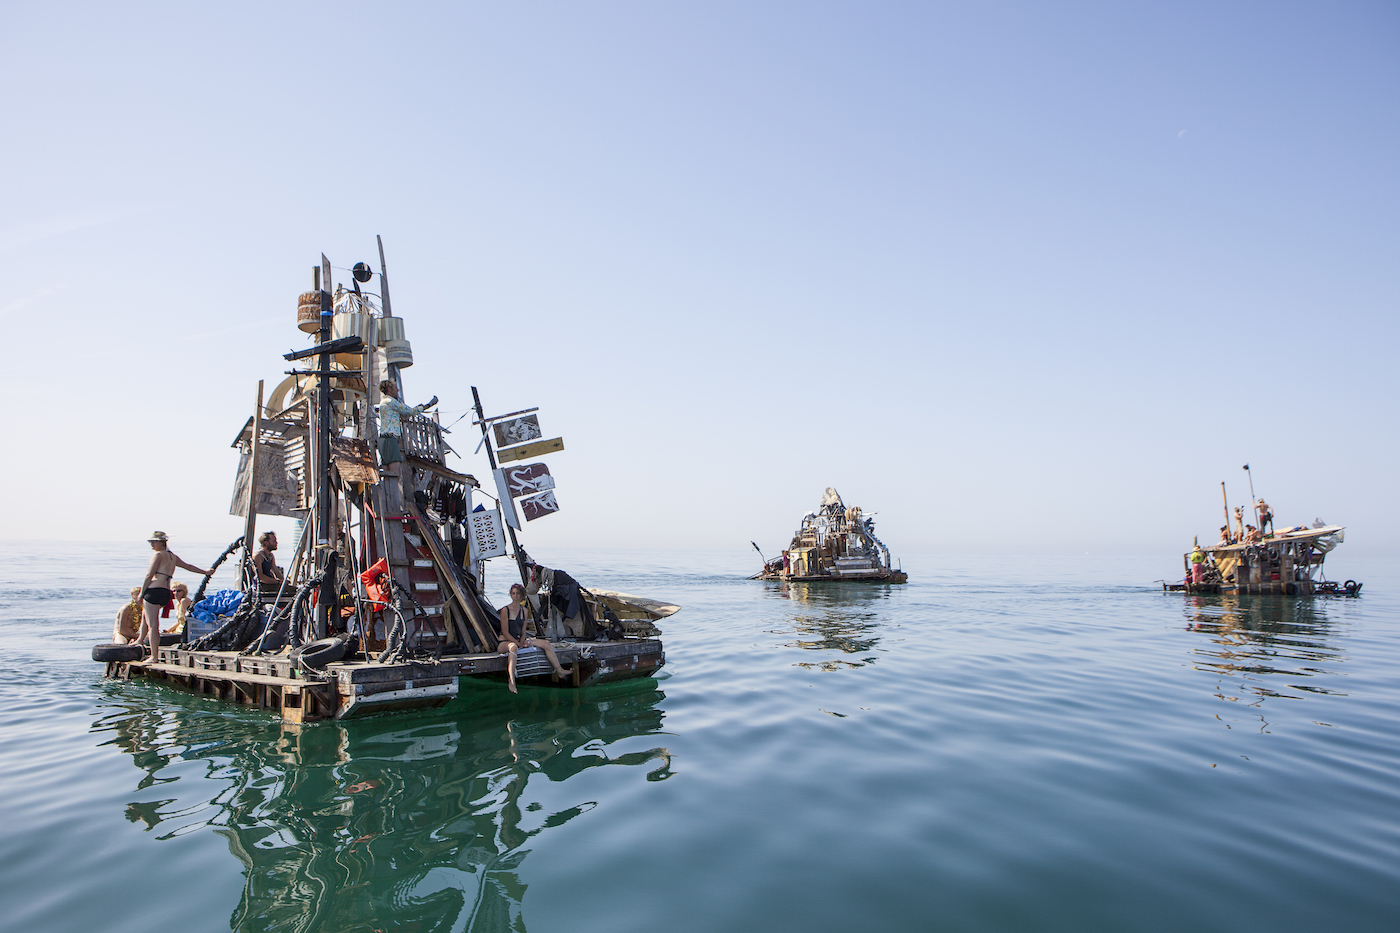 """Swoon, """"Swimming Cities of Serenissima"""" (2009), floating performance and installation (photo by Tod Seelie, courtesy the Parrish Art Museum)"""